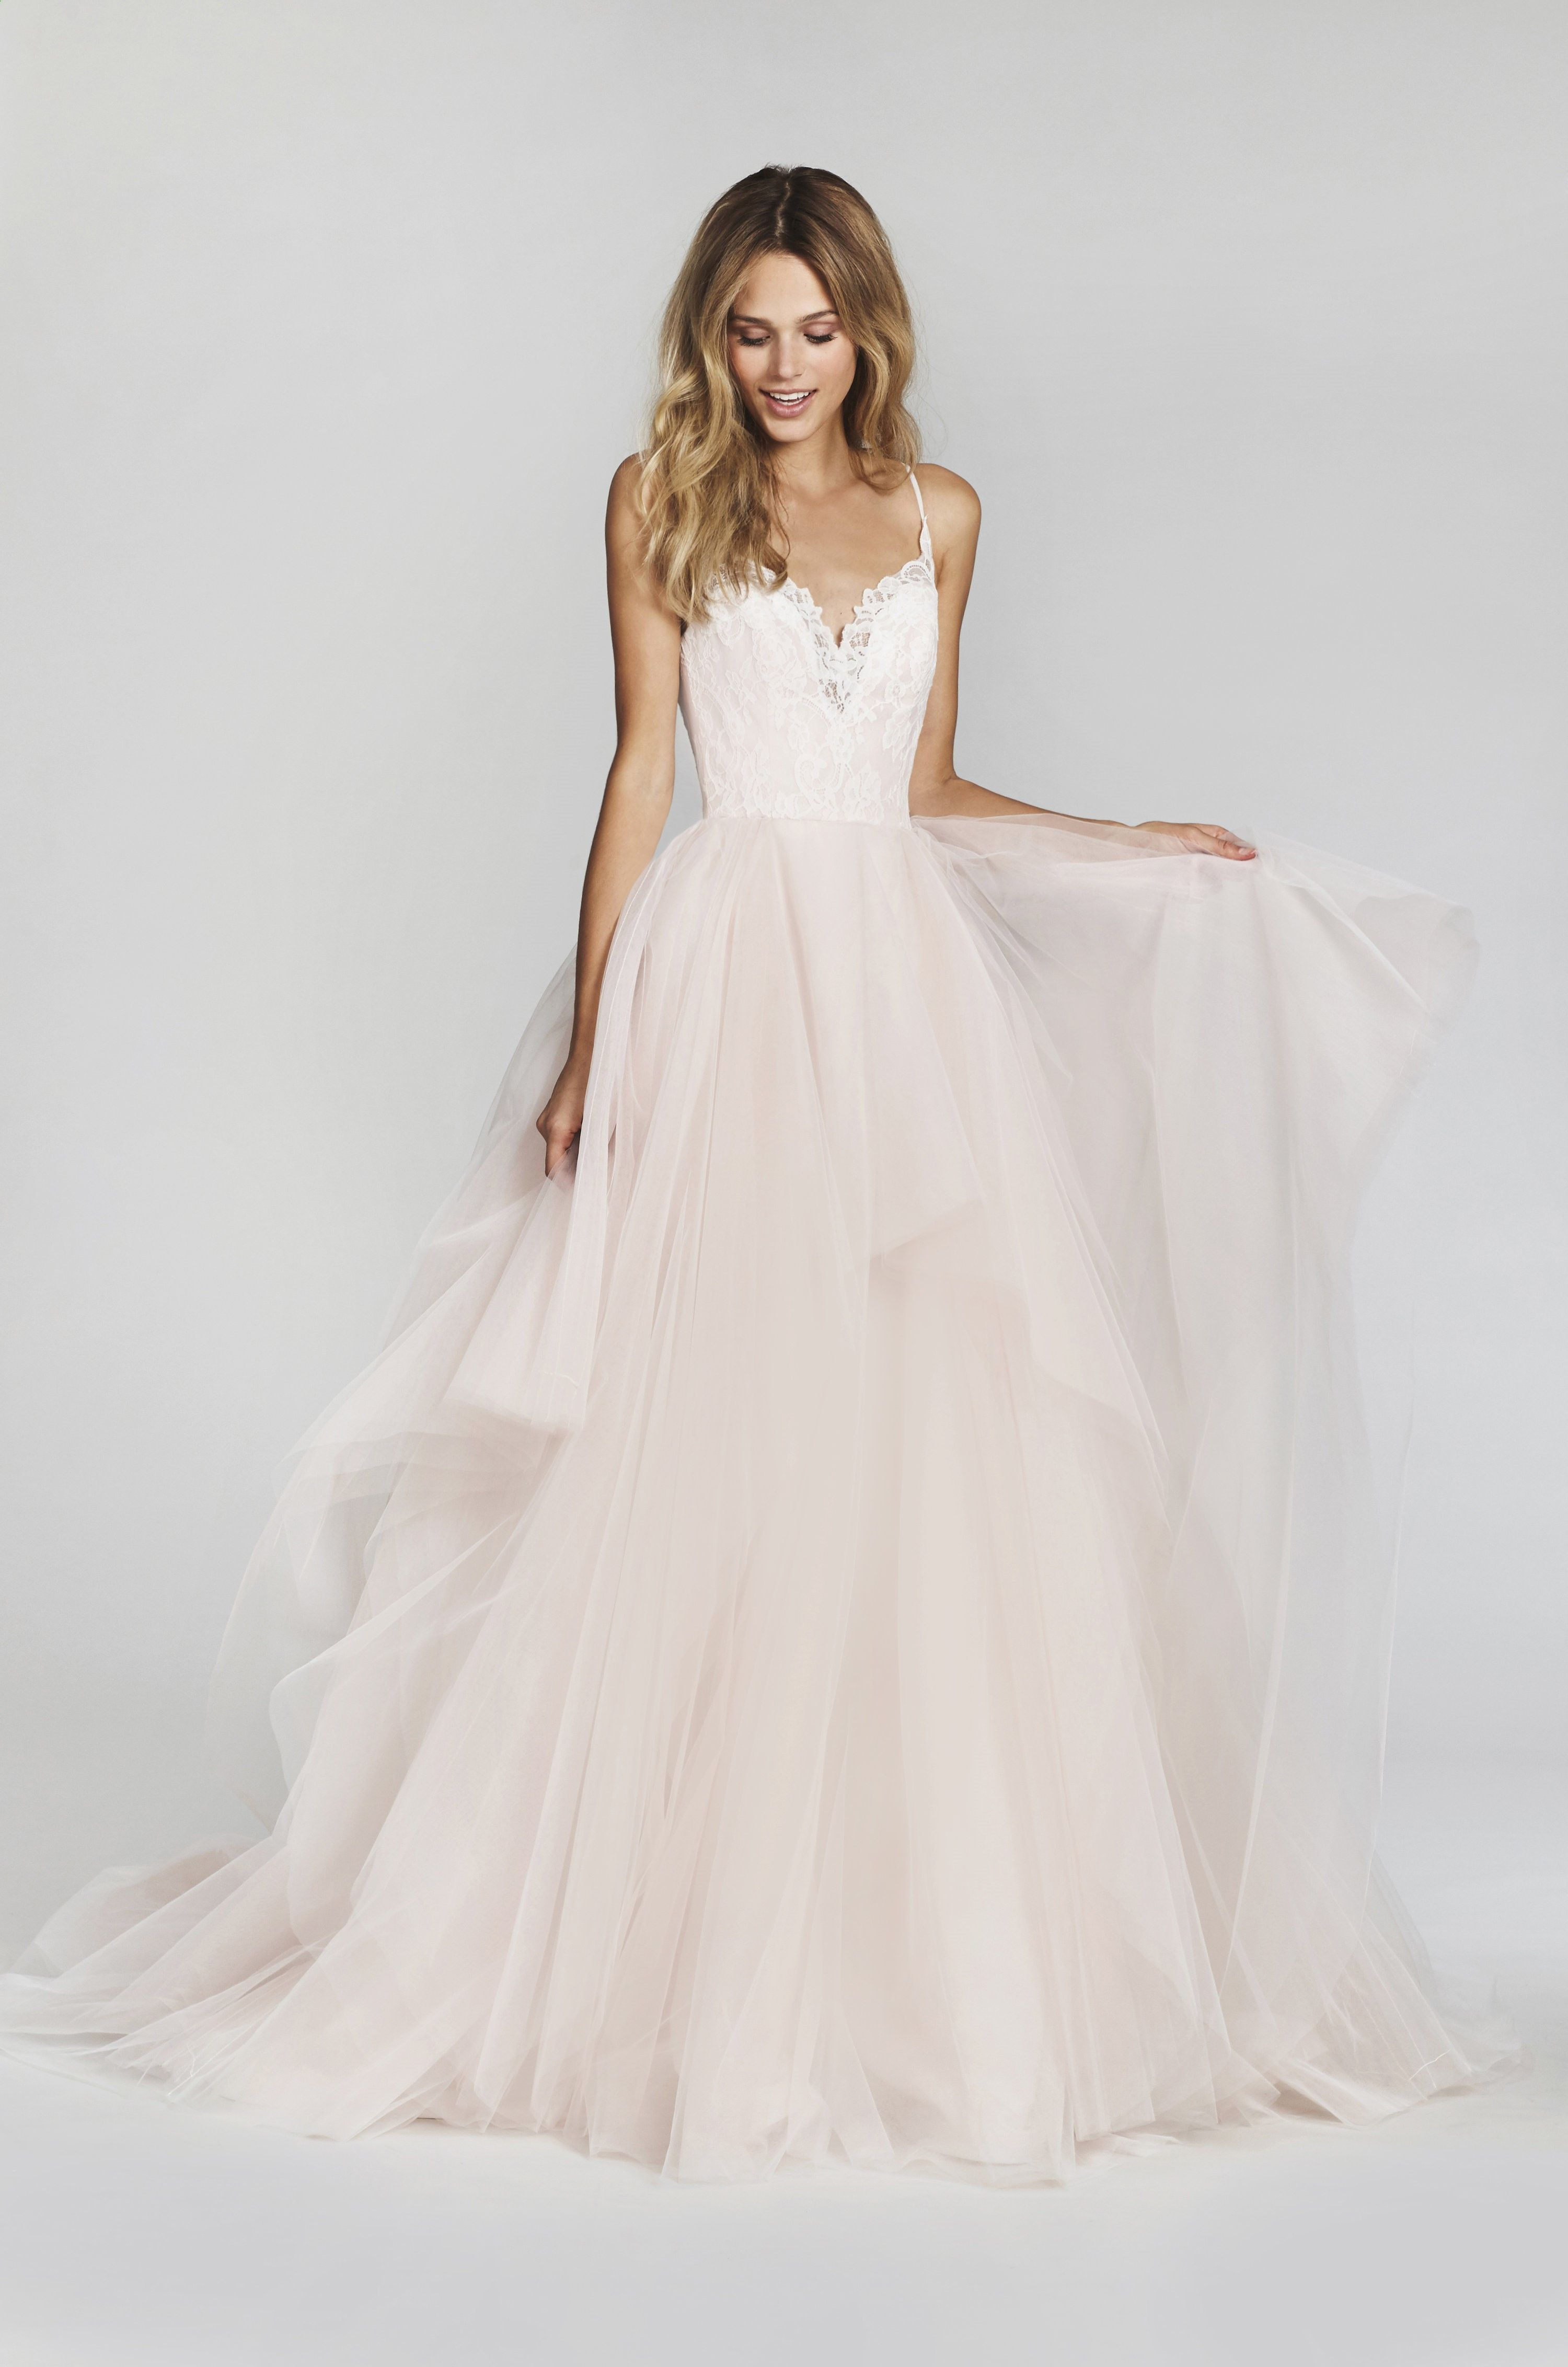 Hayley paige dori wedding dress  Bridal Gowns and Wedding Dresses by JLM Couture  Style  Lilou